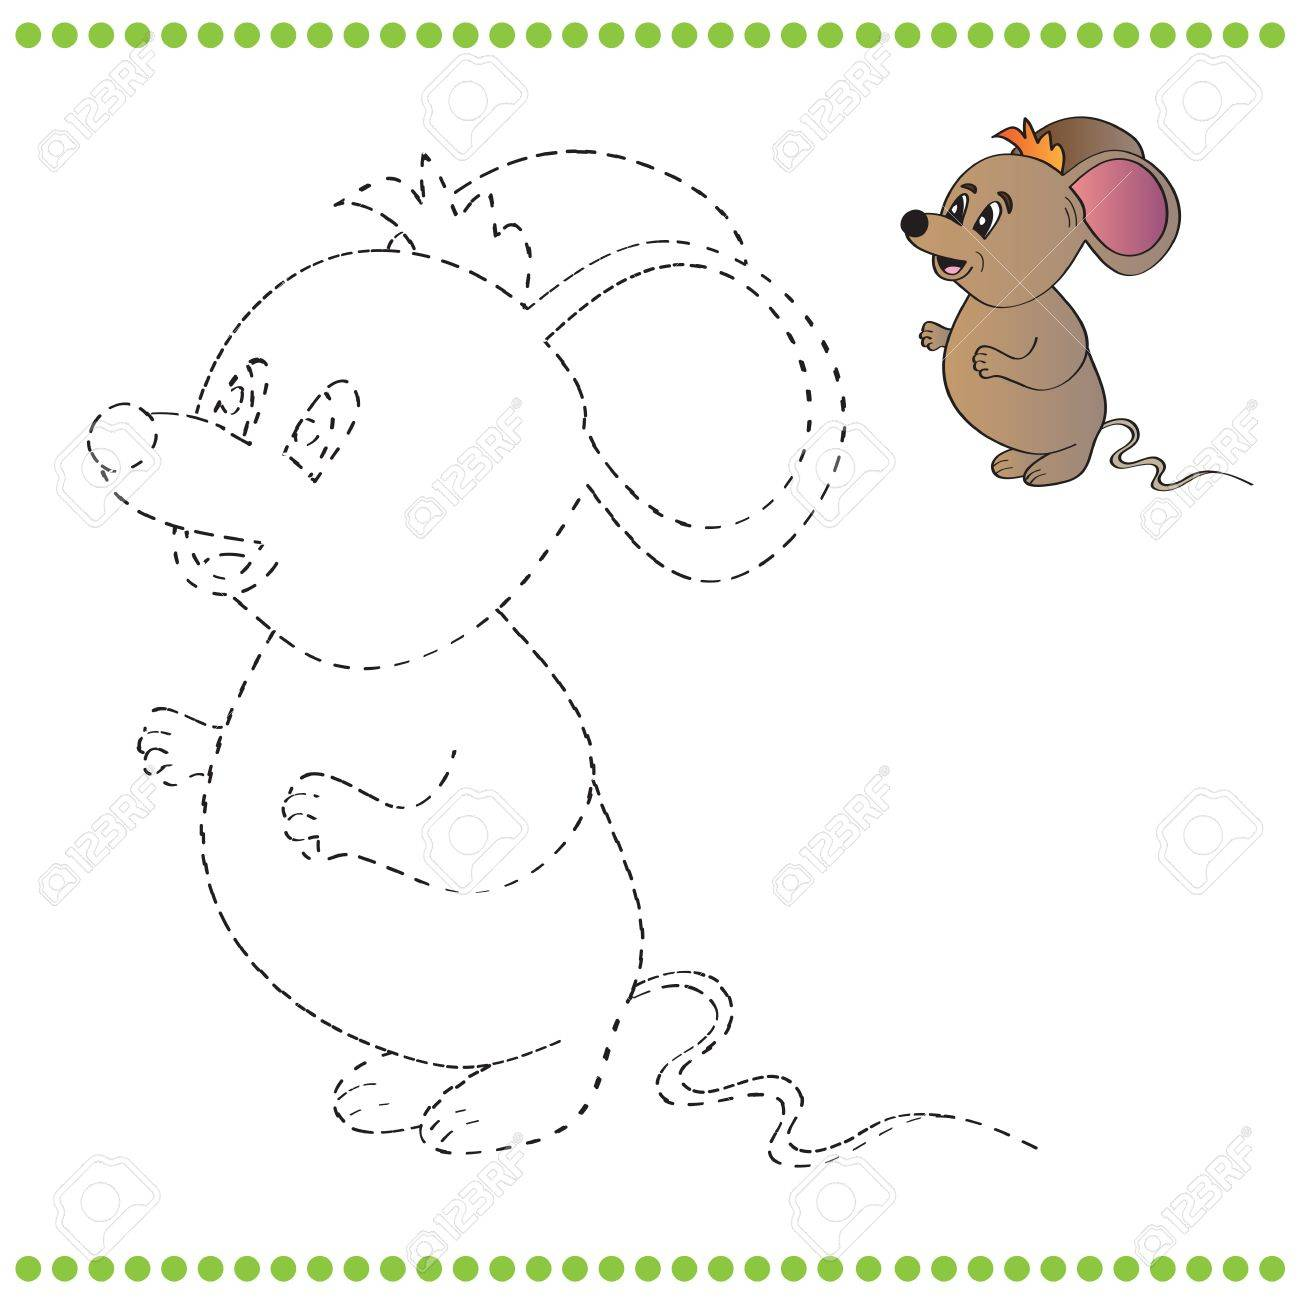 Connect The Dots And Coloring Page - Mouse Royalty Free Cliparts ...